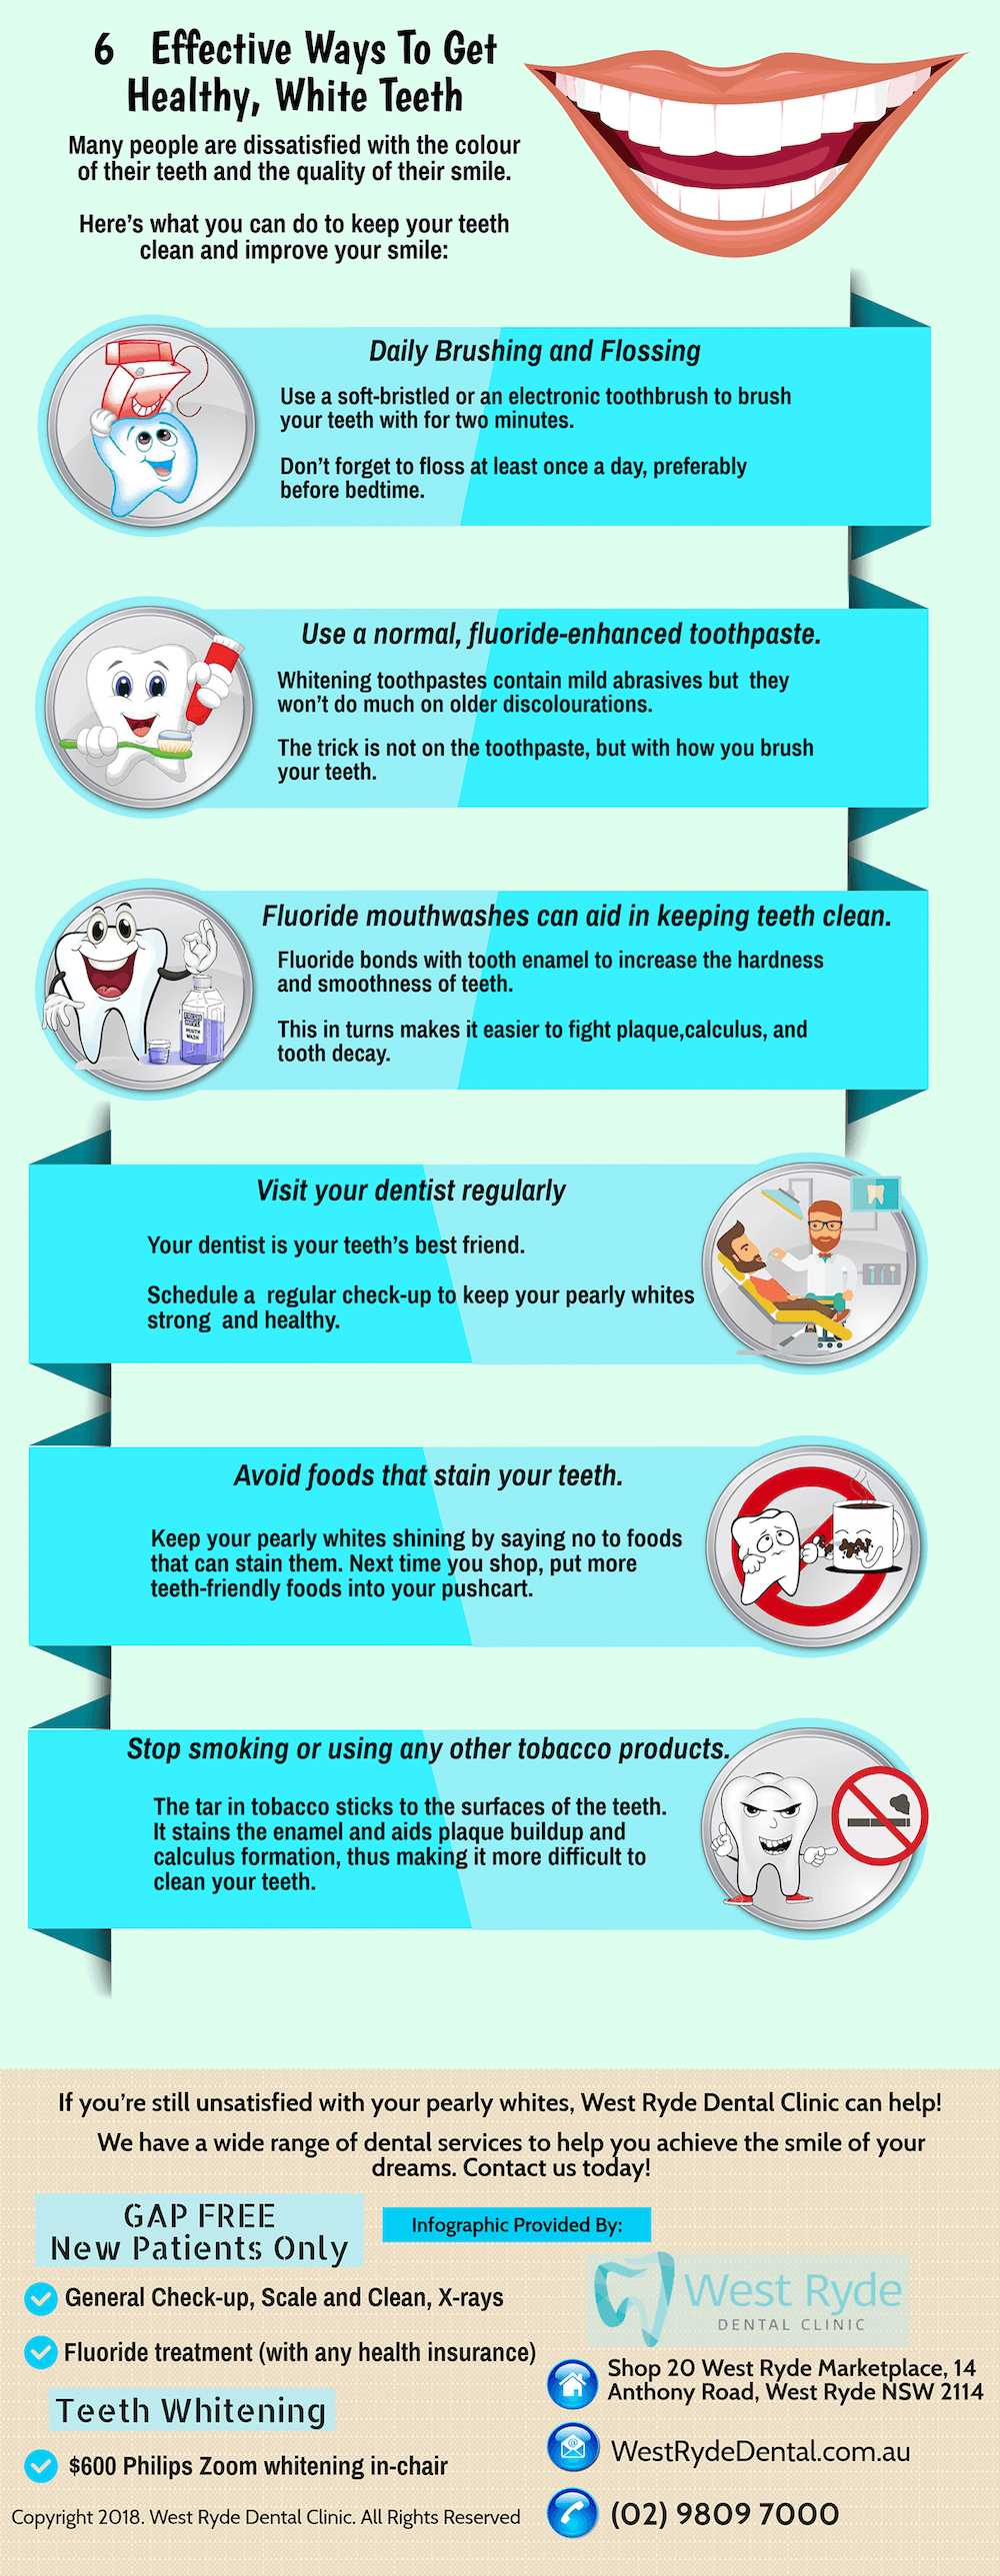 6-Tips-To-Keep-For-Healthy-White-Teeth-In-West-Ryde